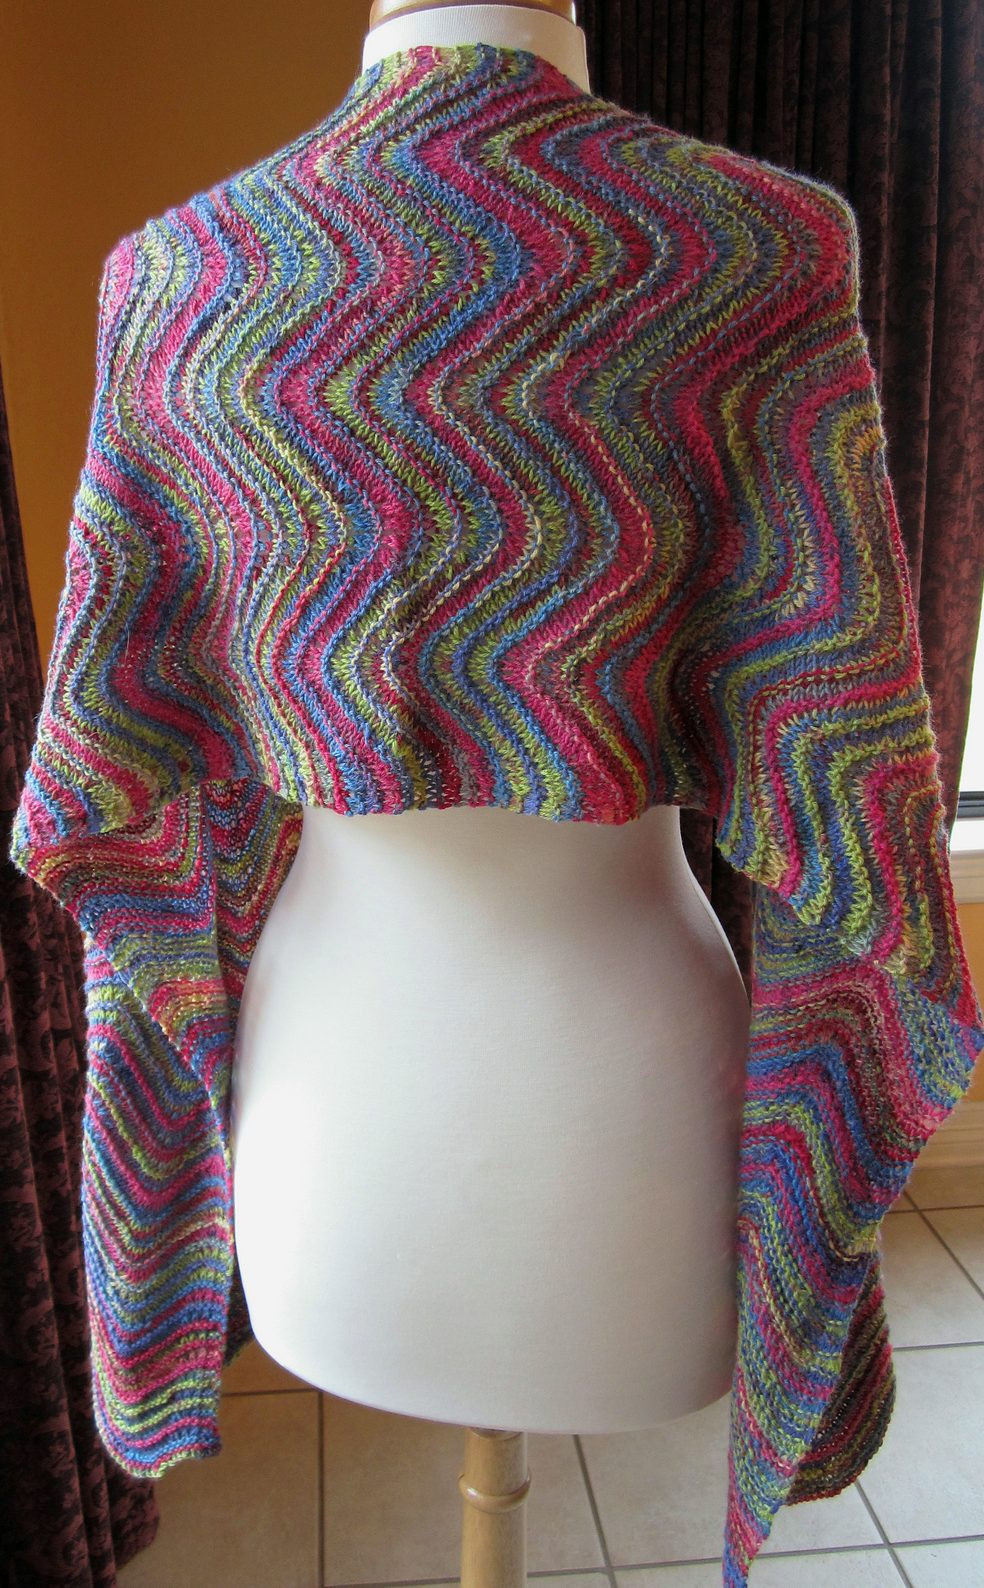 Best Of More Easy Shawl Knitting Patterns Knitting Design Of Incredible 42 Images Knitting Design